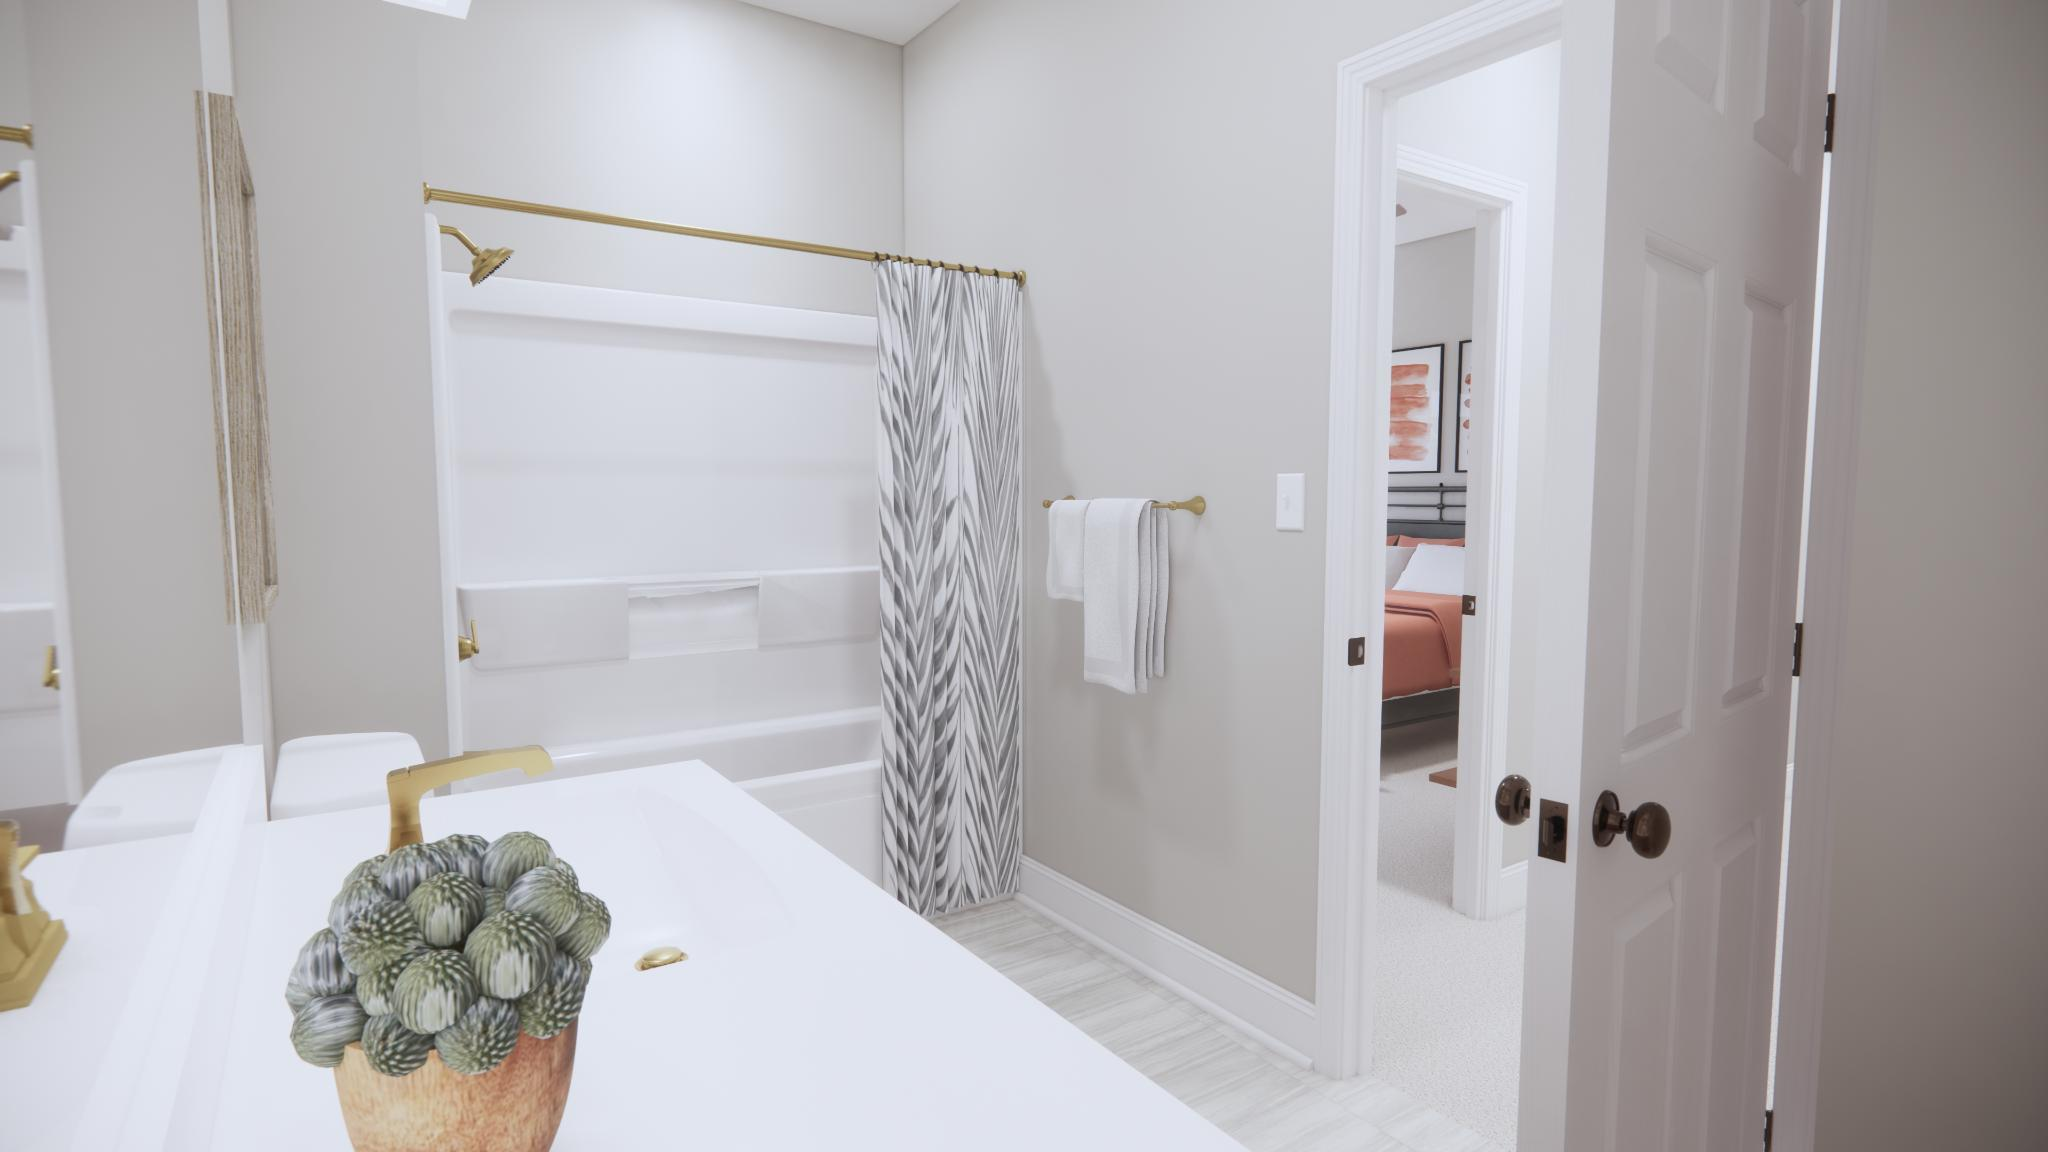 Bathroom featured in the Avondale By Main Street Homes in Richmond-Petersburg, VA